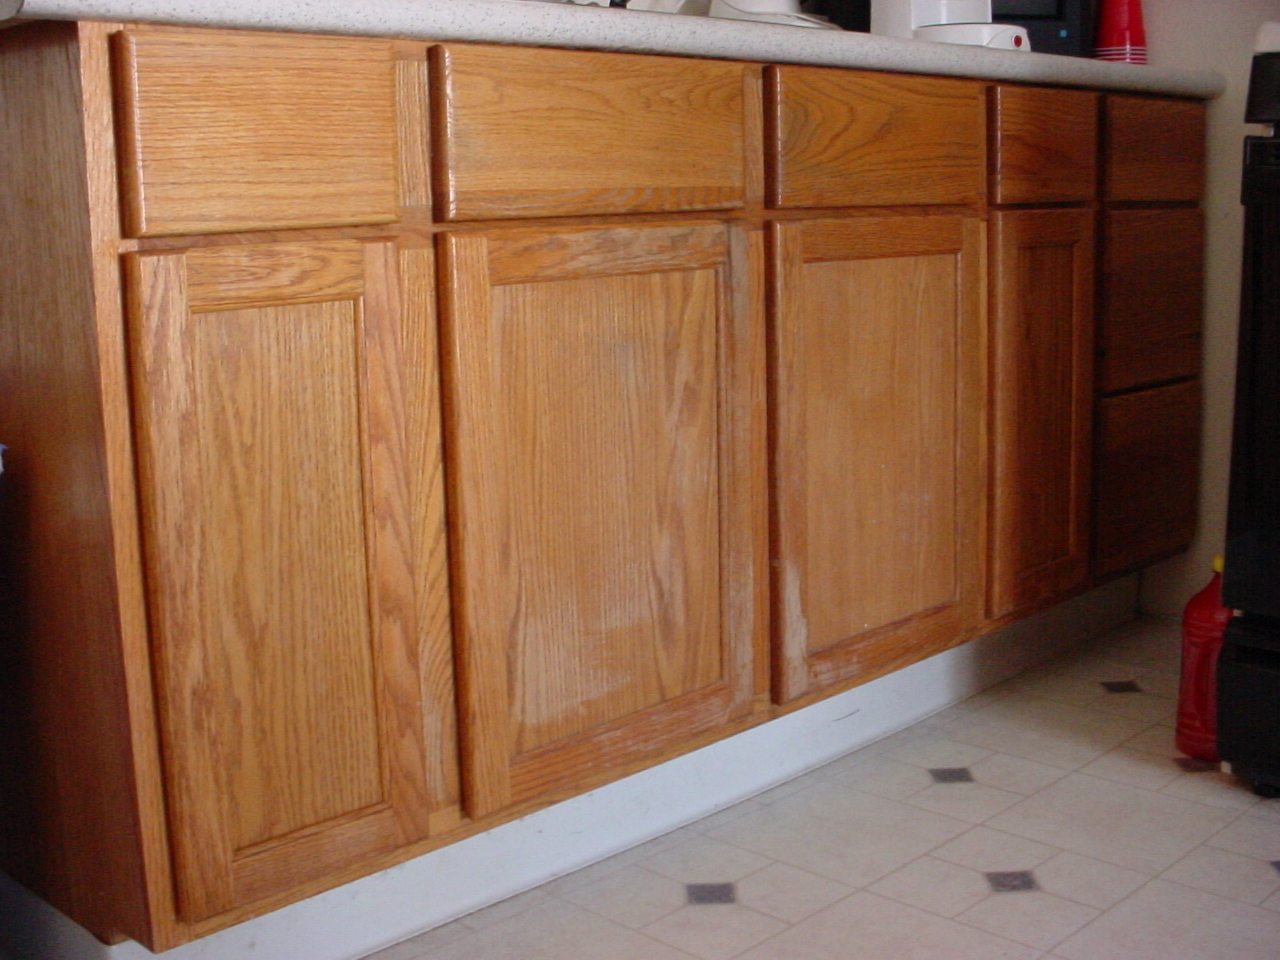 kitchen cabinets stains pictures photo - 6